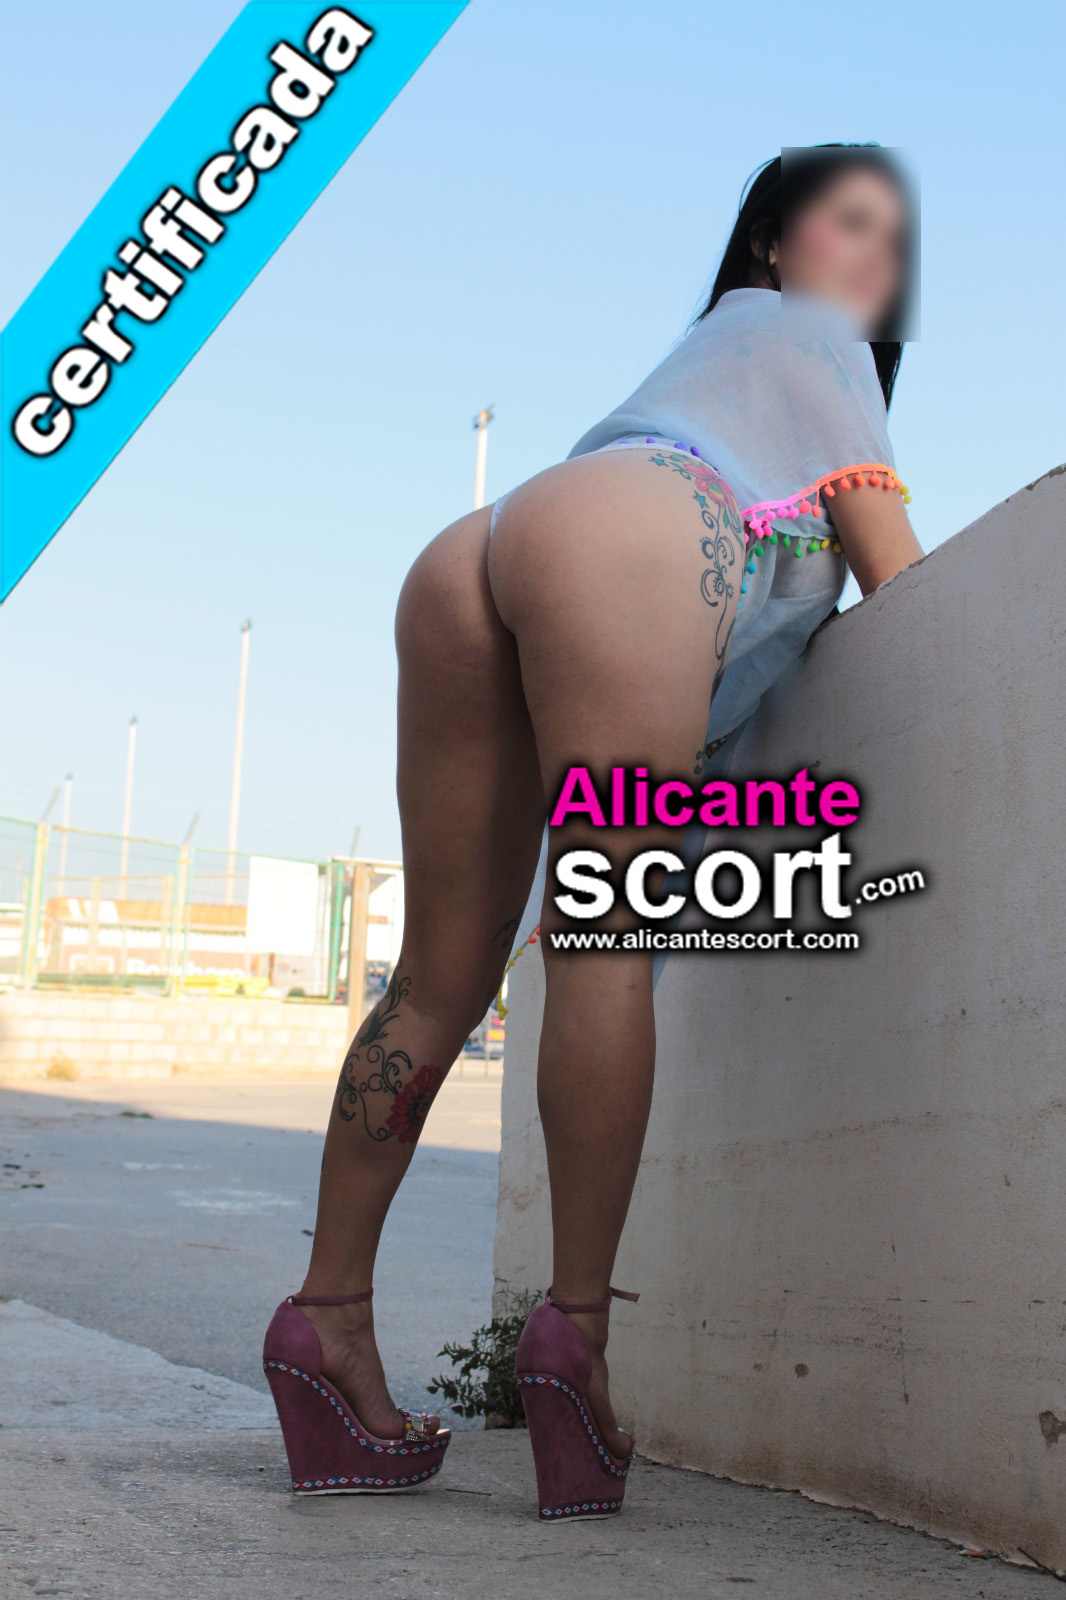 CATALINA Putas en Alicante y Escorts en Alicante